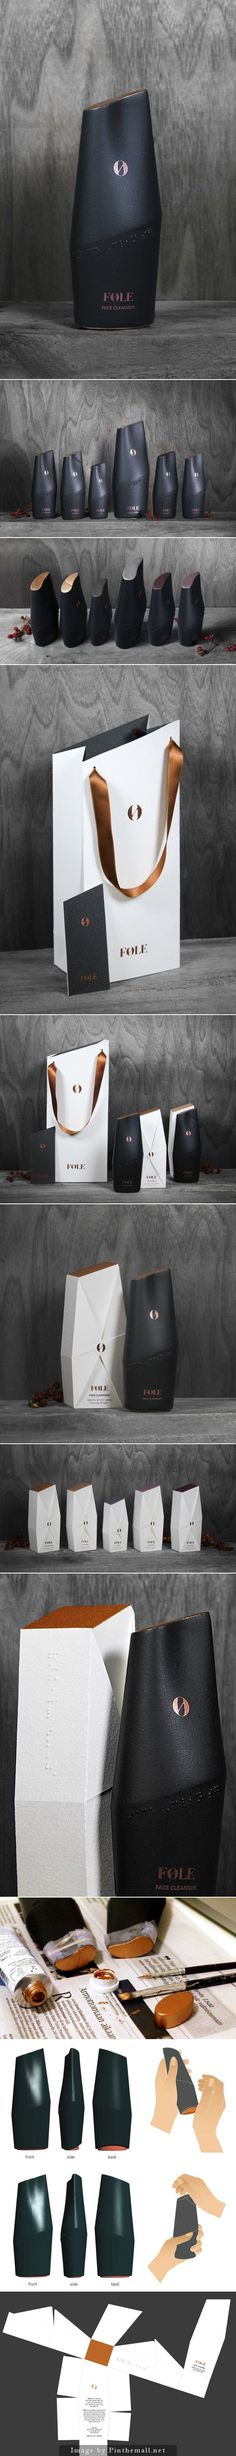 FØLE | I love this organic, luxurious skin care product line | #packaging design by Saana Hellsten PD